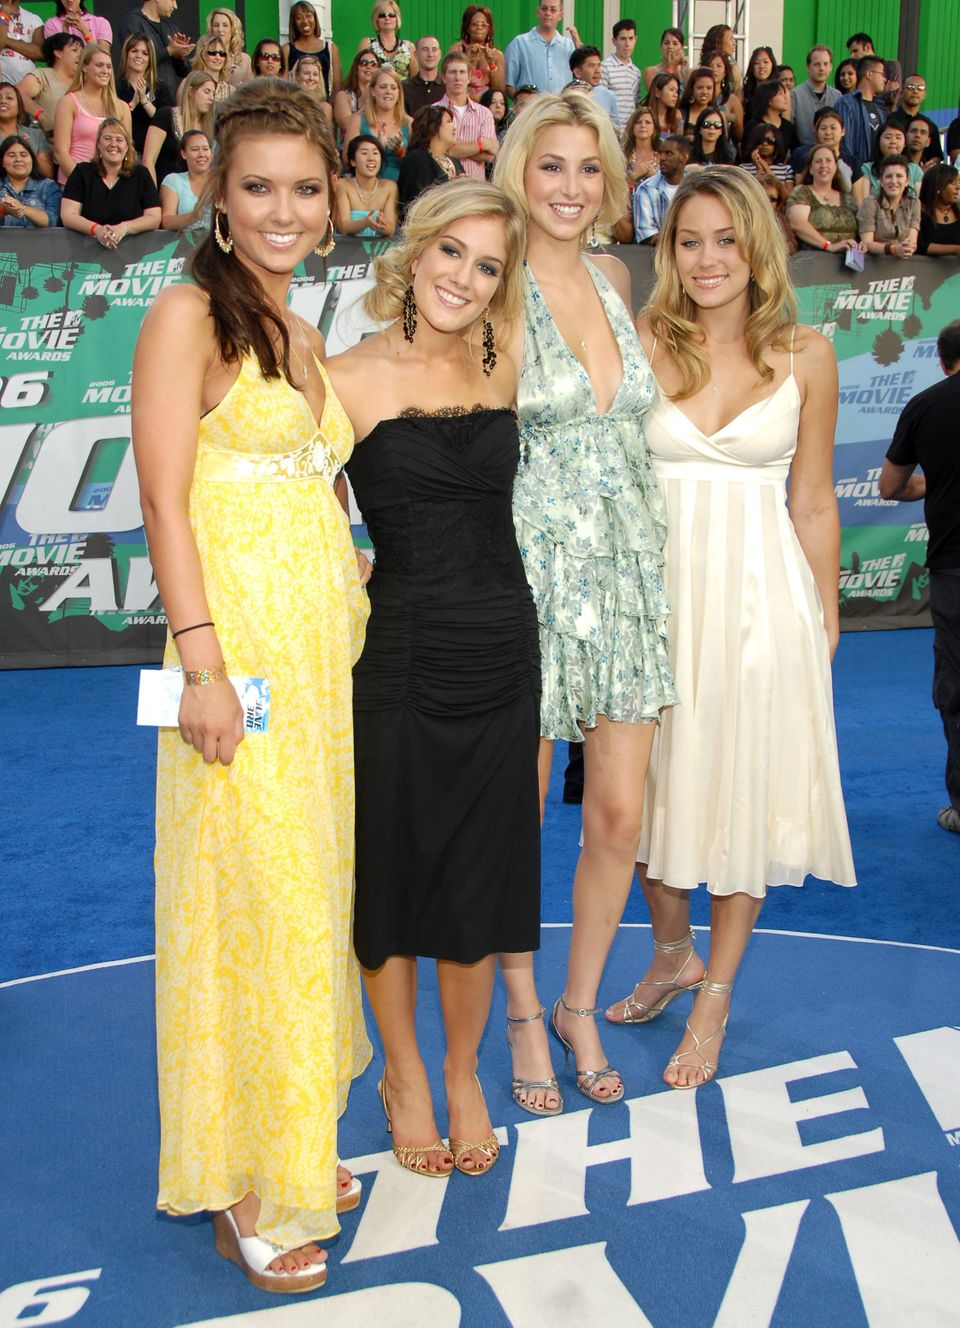 The Hills' Stars Then And Now, From 2006 To Today's Reboot | HuffPost Life